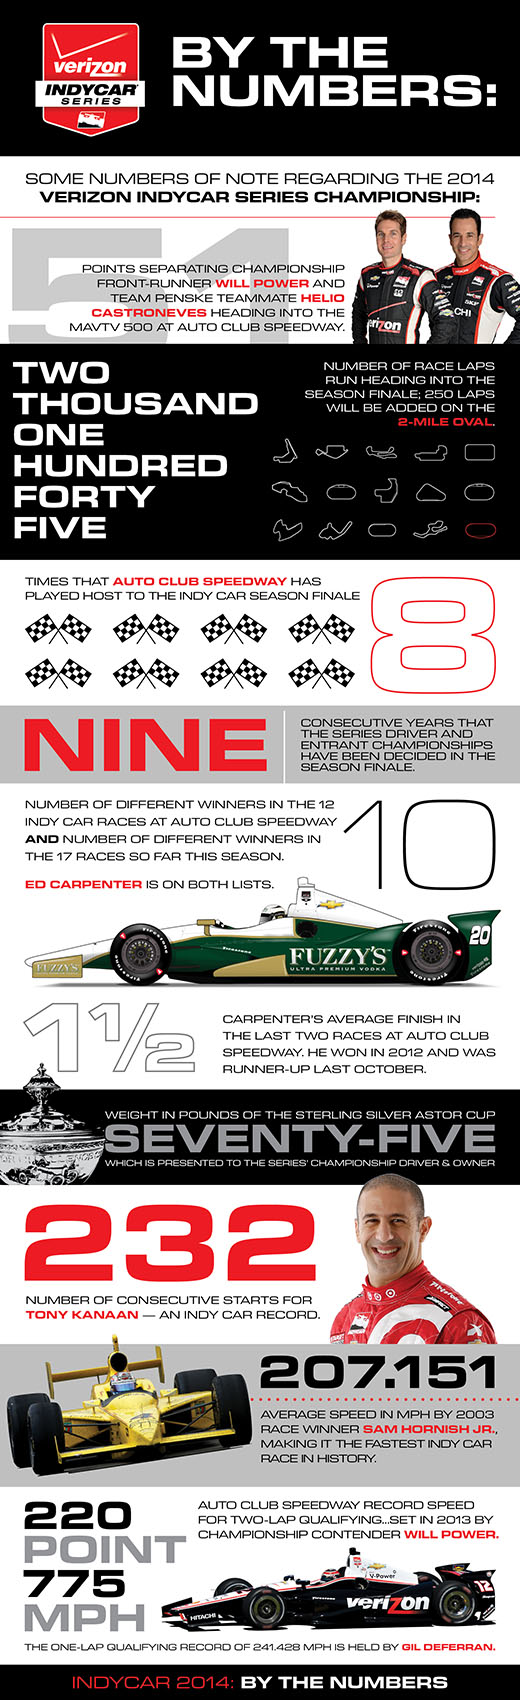 2014 Championship By The Numbers Infographic